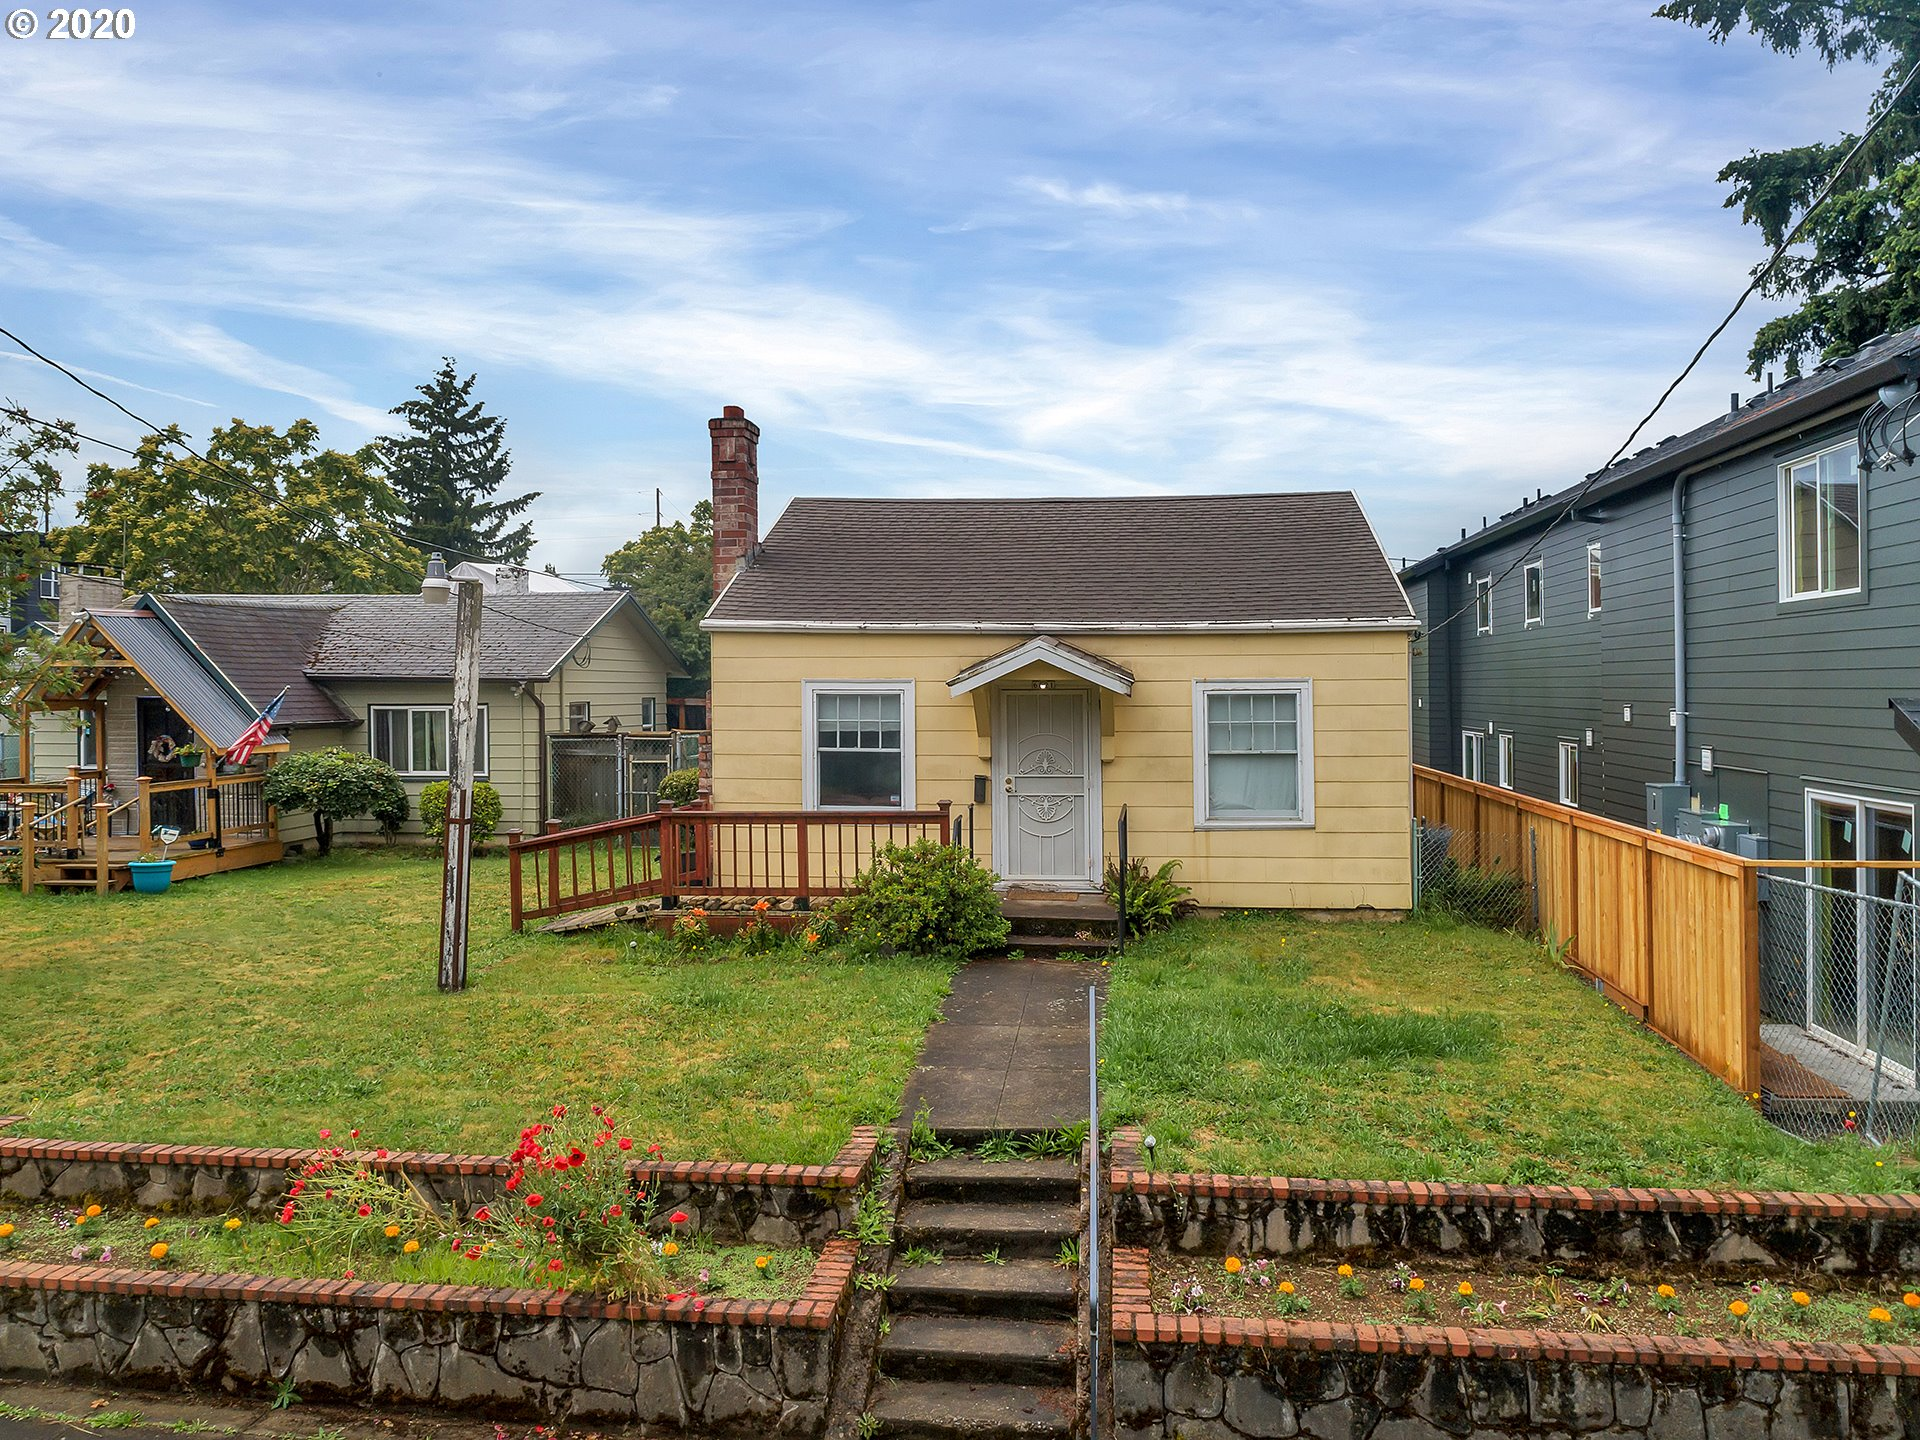 Bring your creativity and vision to make this lot/fixer into investment magic! Located in primo Arbor Lodge close to Light Rail, New Seasons, Peninsula Park/Rose Garden, property includes these bonuses: antique woodstove, Bike Score:96, extra sq feet in the partial basement & a generous private yard with greenhouse, firewood and composter for gardens, pets & play. RM3 Zoning allows for development of multiple units (buyer to verify). Property sold as-is: seller to make no repairs. Dream. Tour.